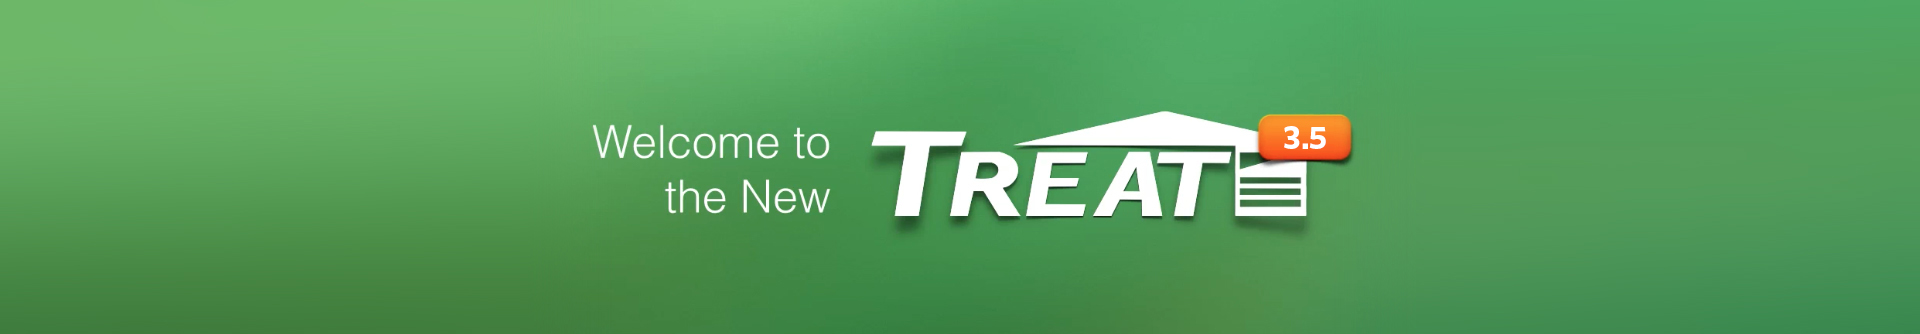 new-treat-3-5